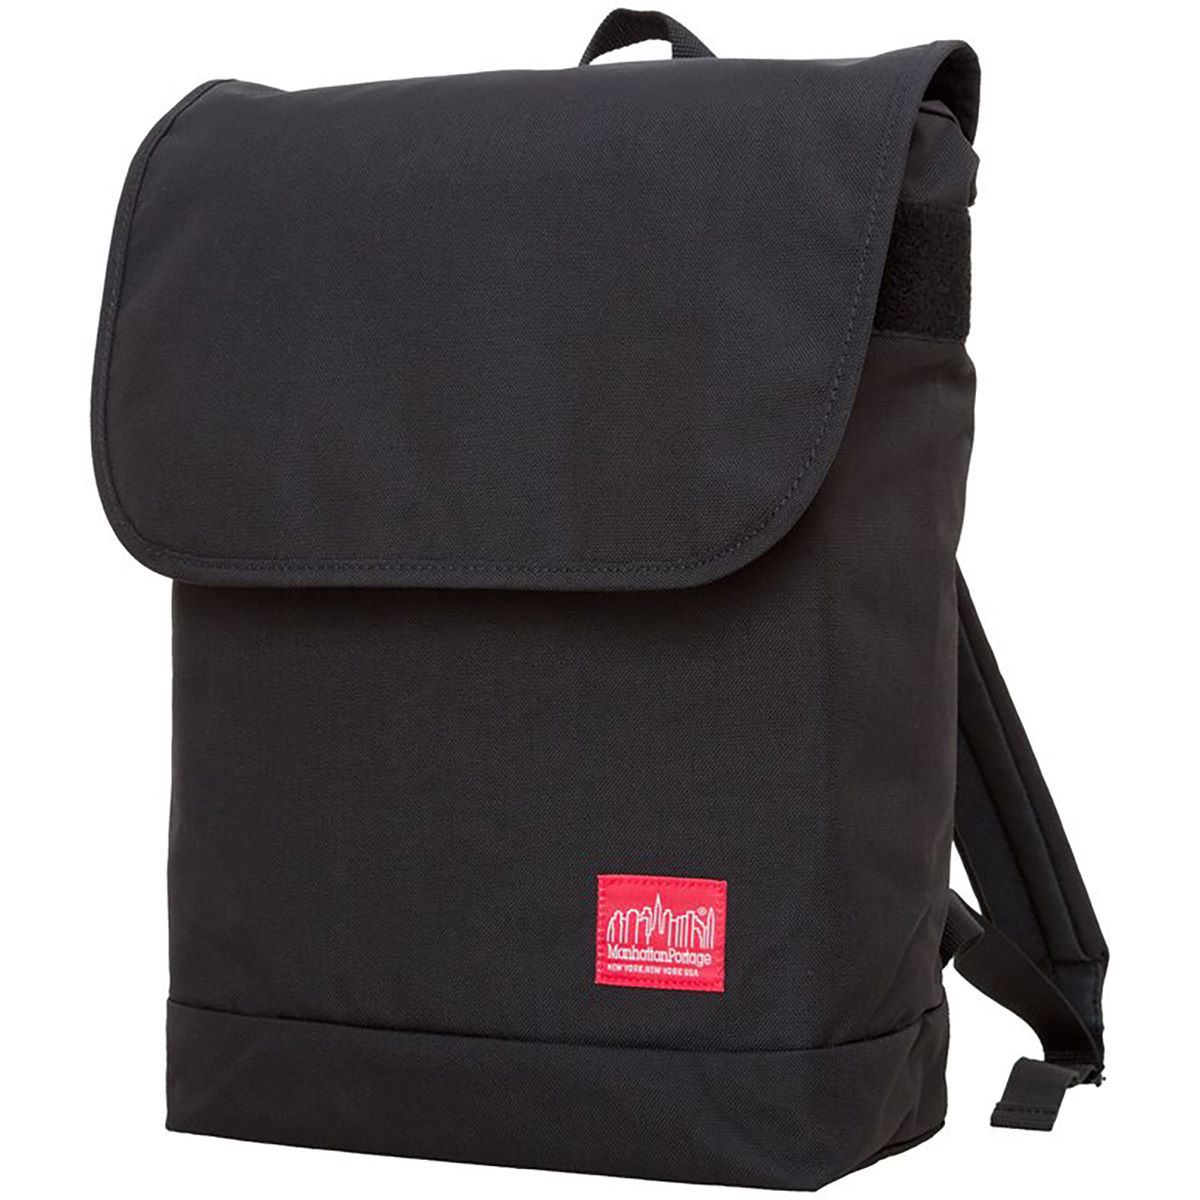 Manhattan Portage Gramercy Backpack - Mochilas